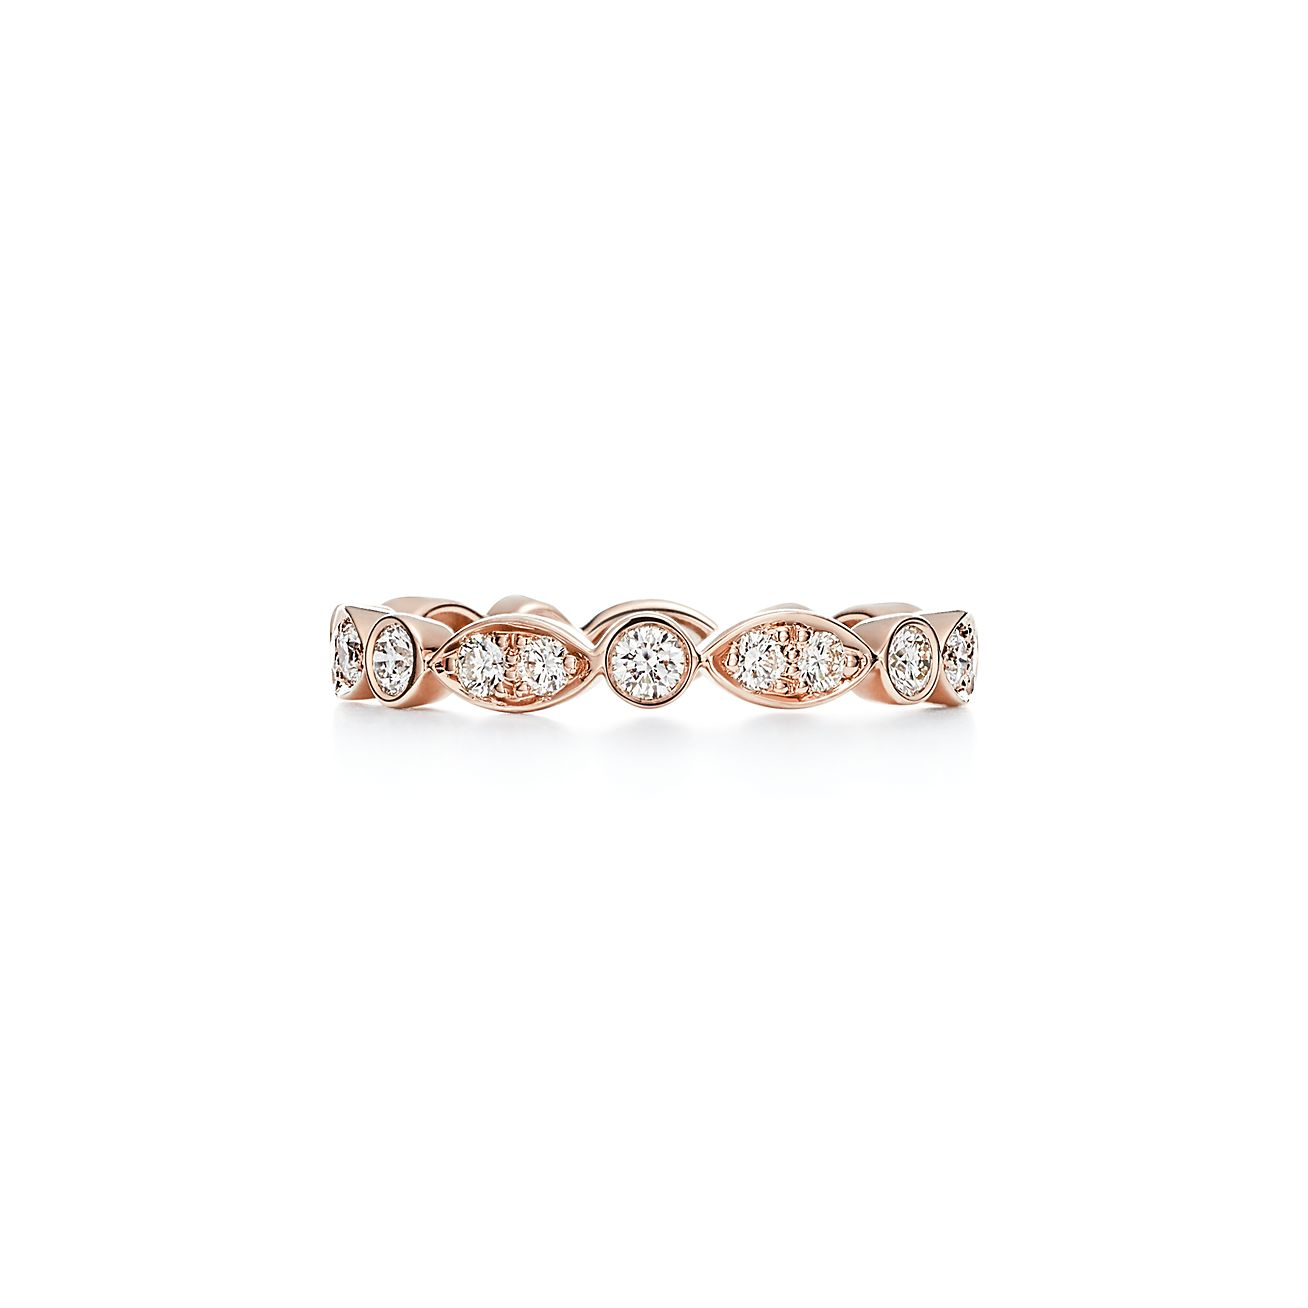 Tiffany Jazz Band Ring In 18k Rose Gold With Diamonds Tiffany Co